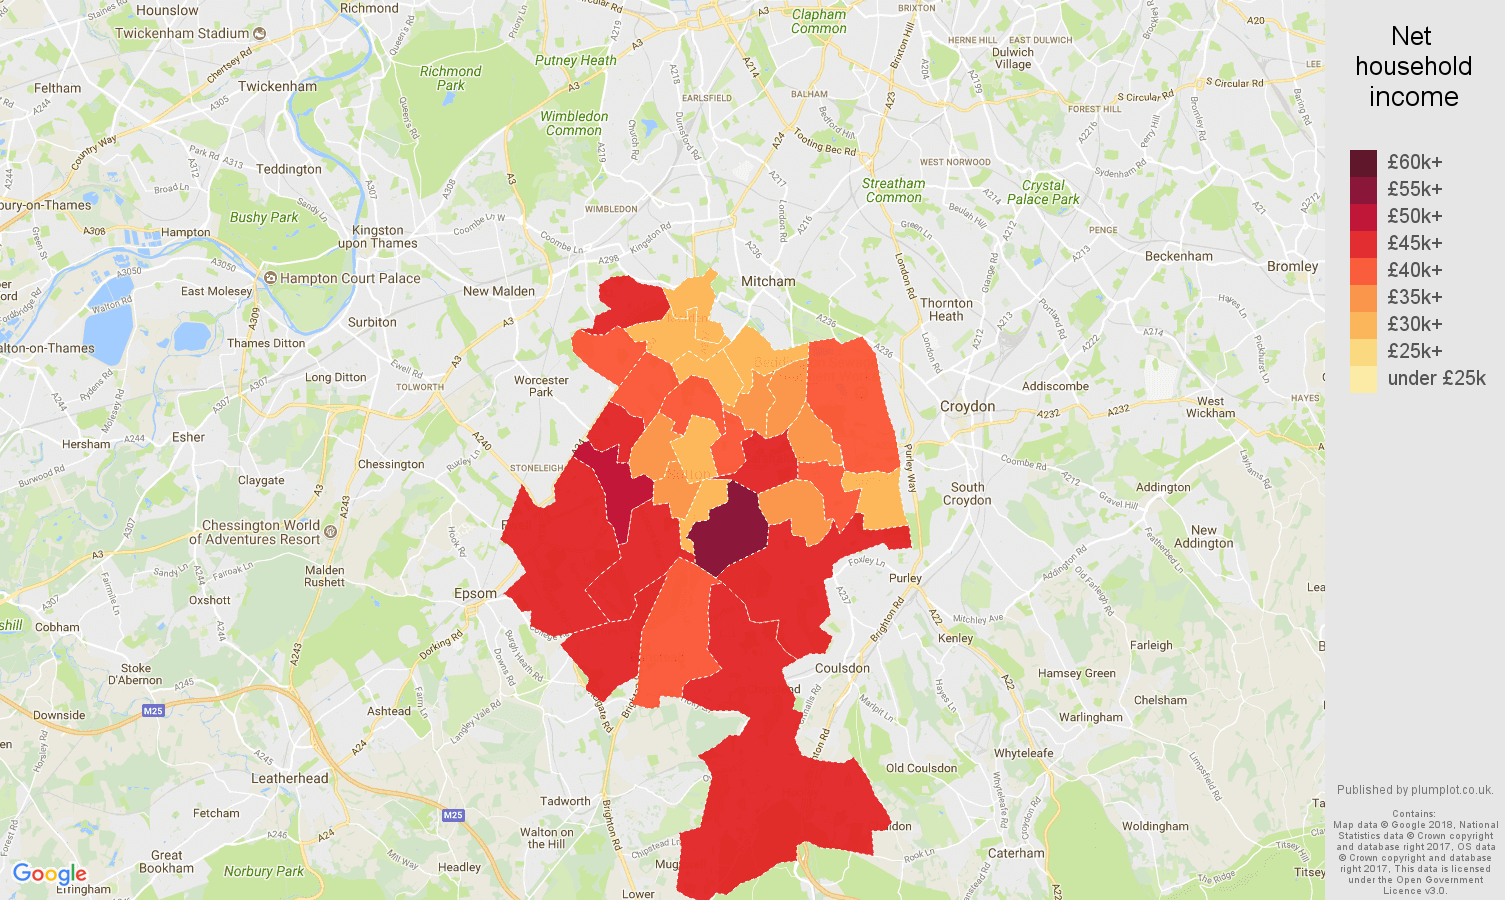 Sutton net household income map